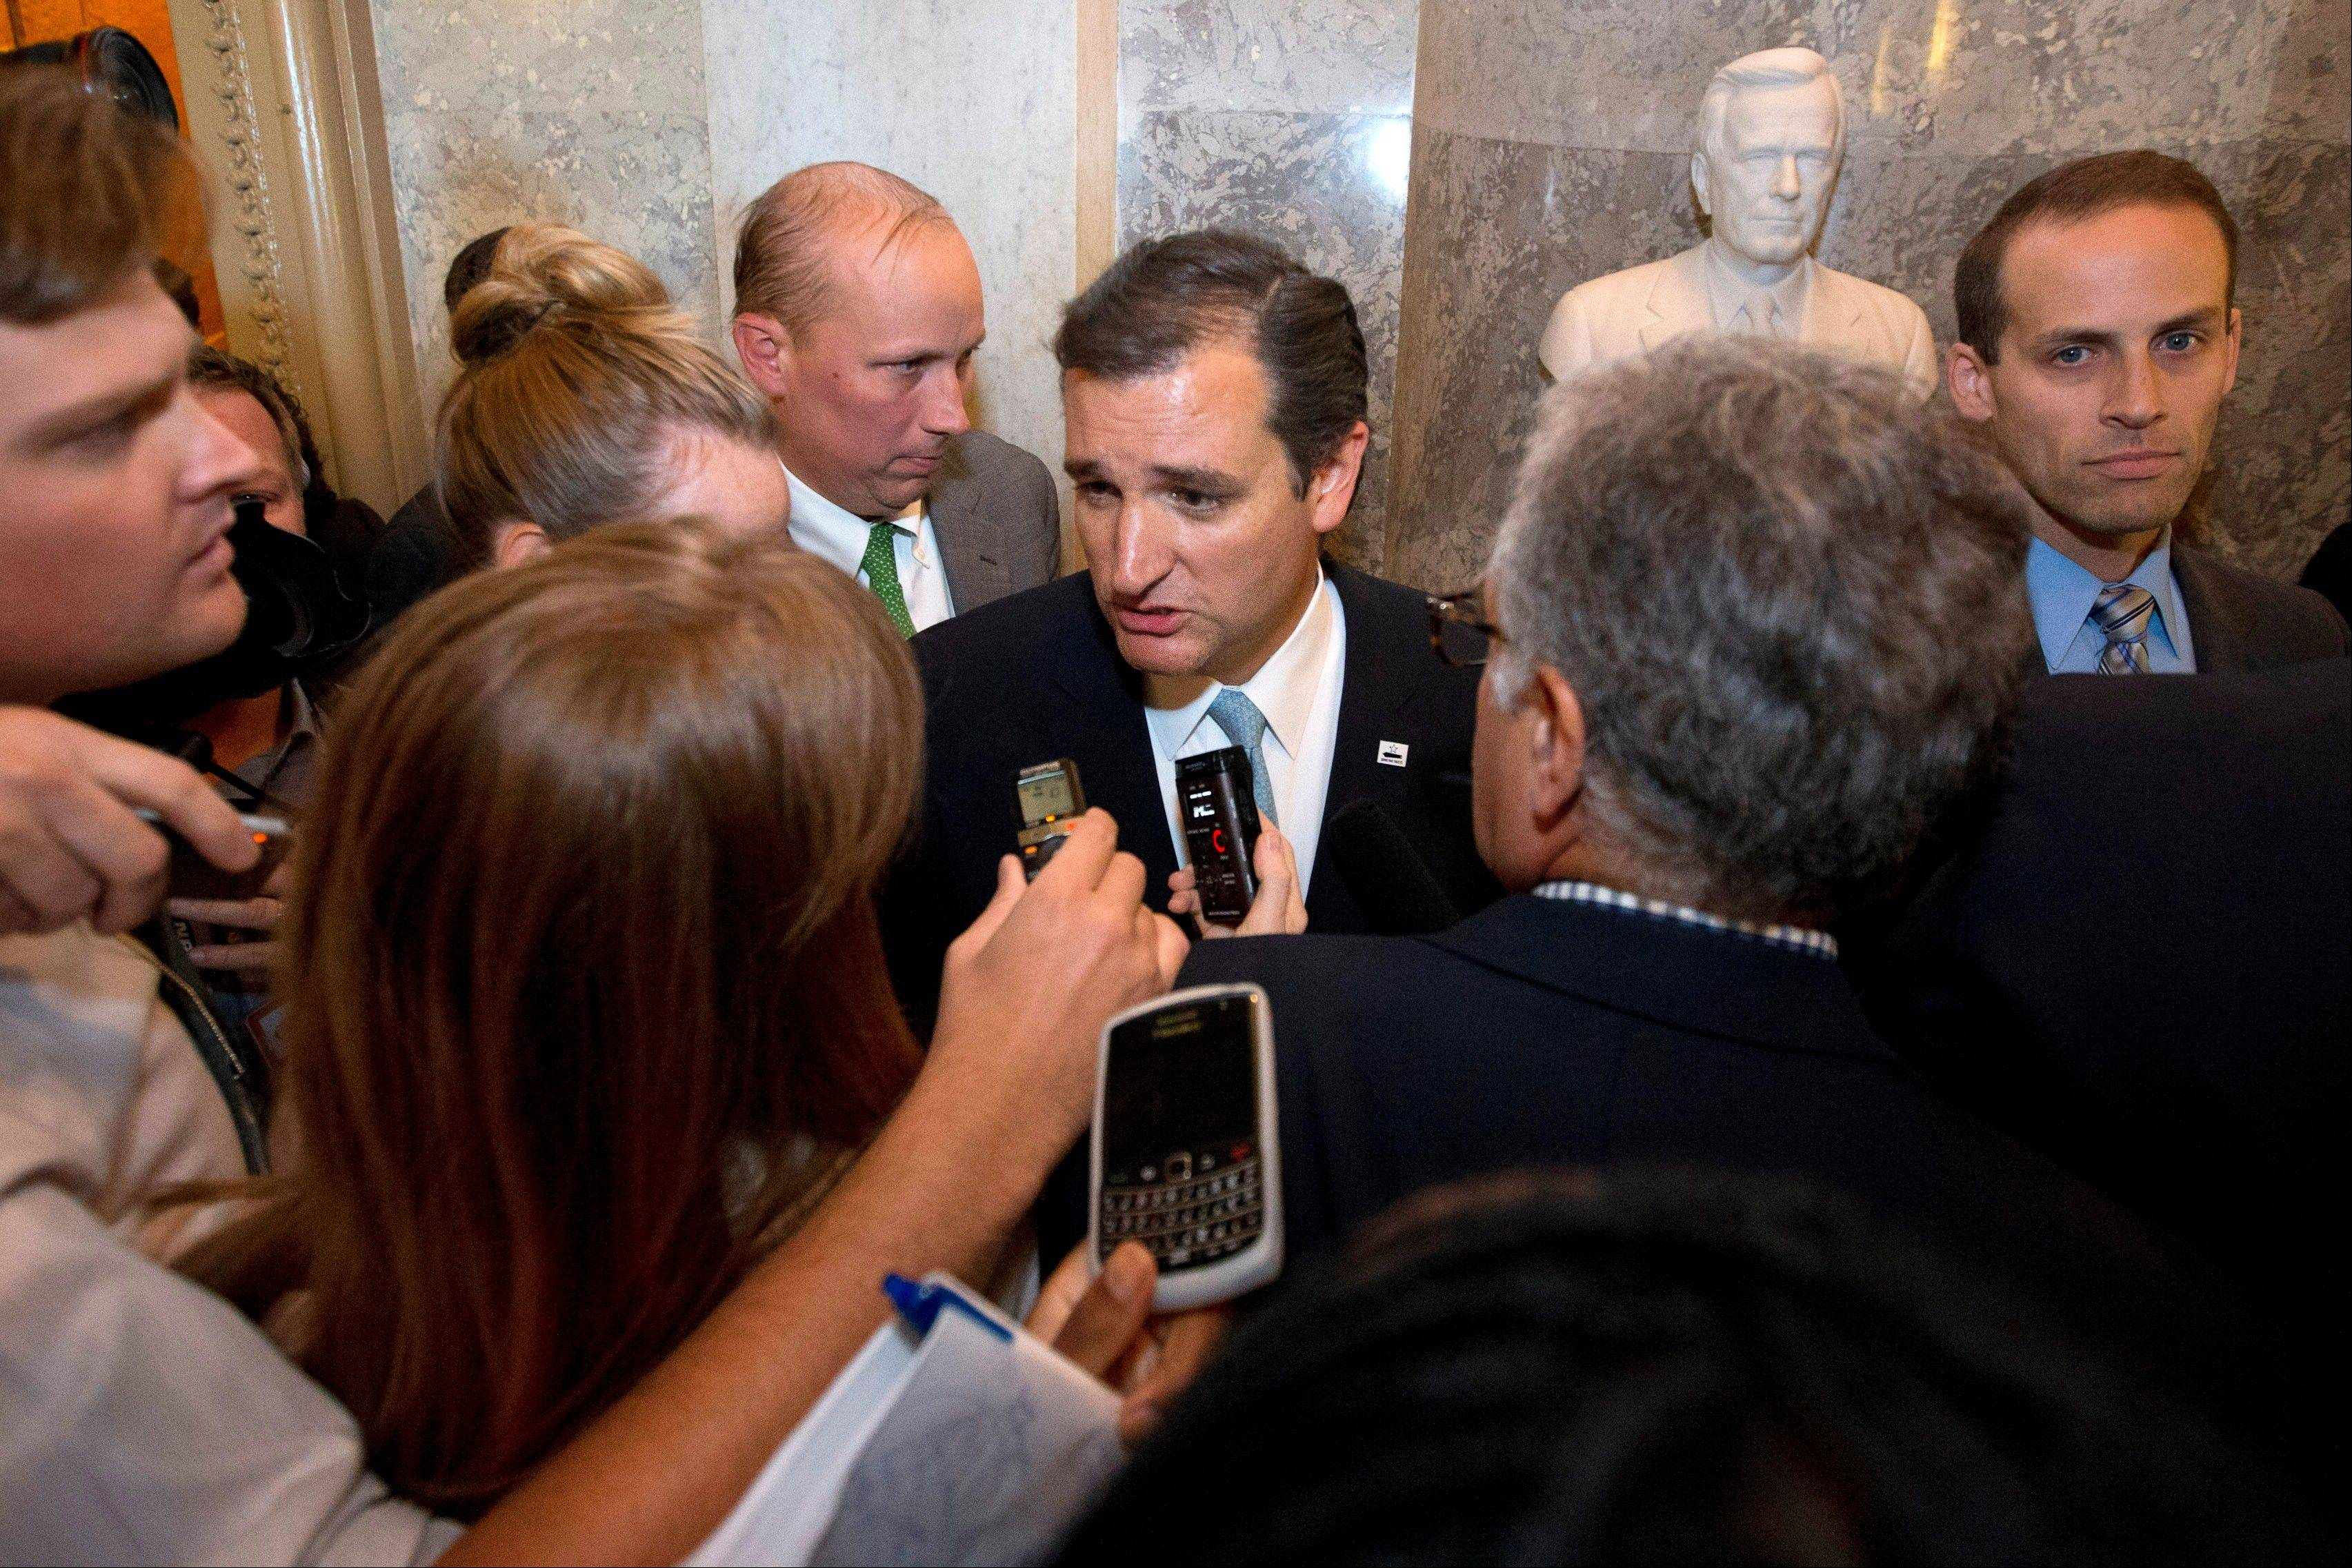 Sen. Ted Cruz, R-Texas speaks to reporters on Capitol Hill in Washington, Wednesday, Sept. 25, 2013, after his marathon speech on the Senate floor. Cruz ended a marathon Senate speech opposing President Barack Obama�s health care law after talking for 21 hours, 19 minutes.